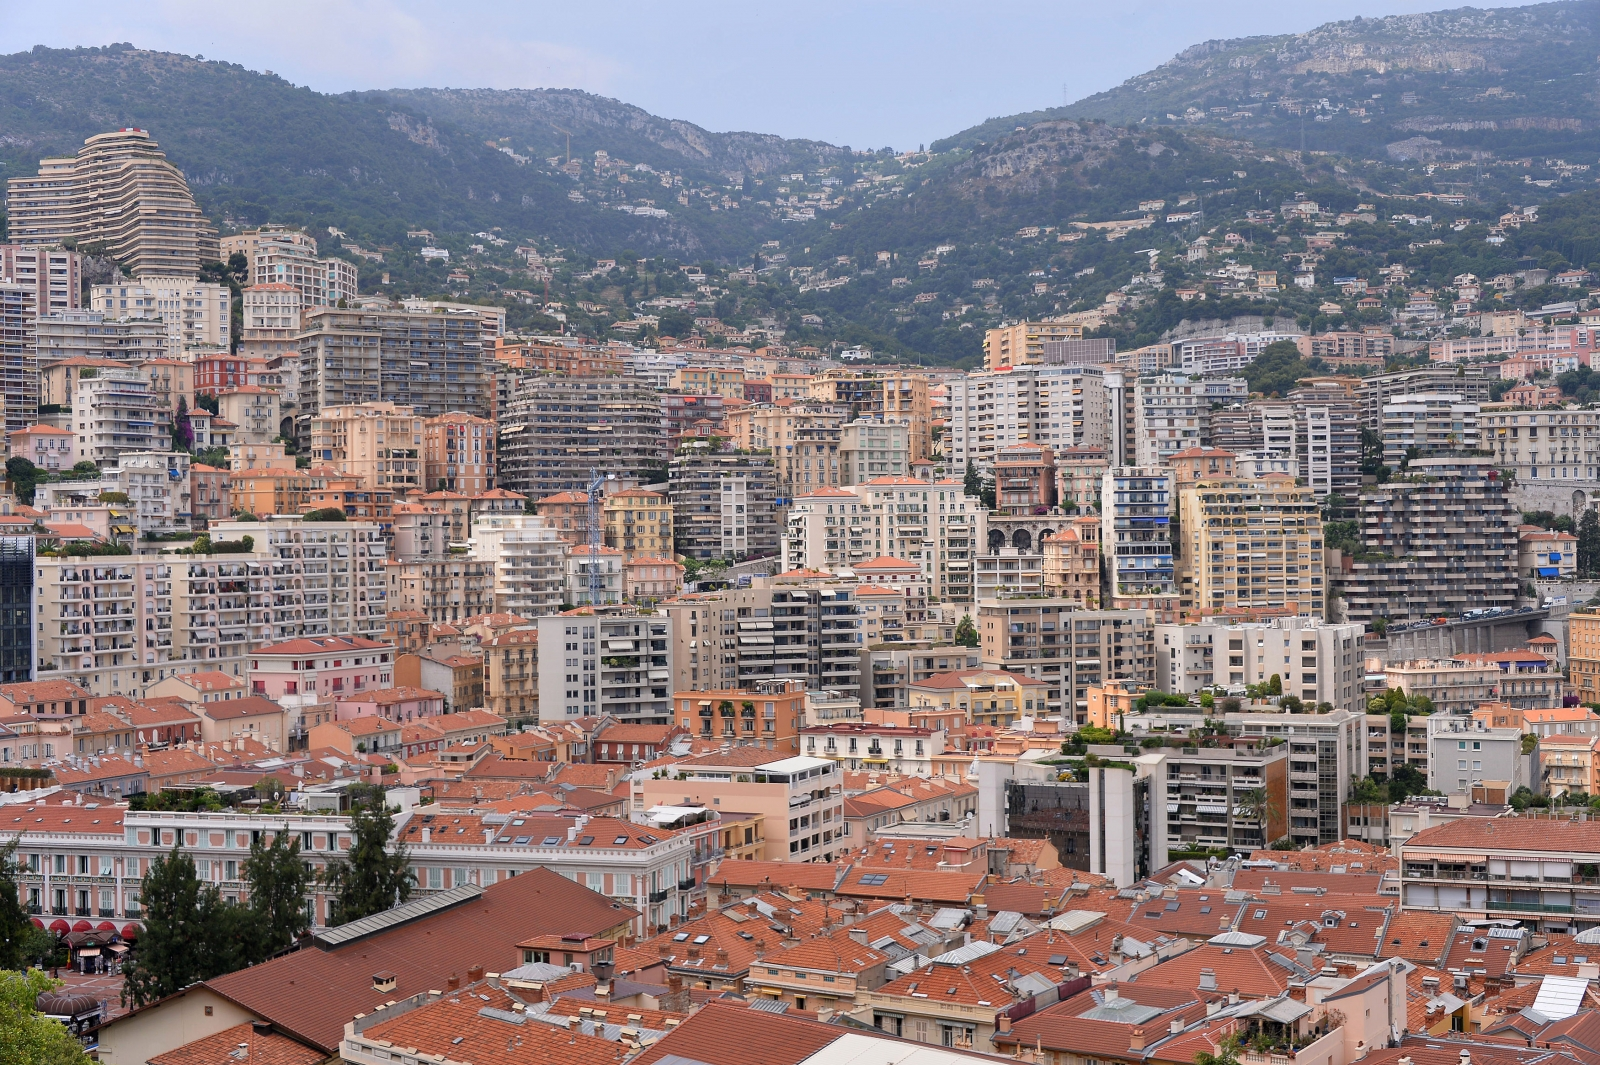 Buildings in Monaco